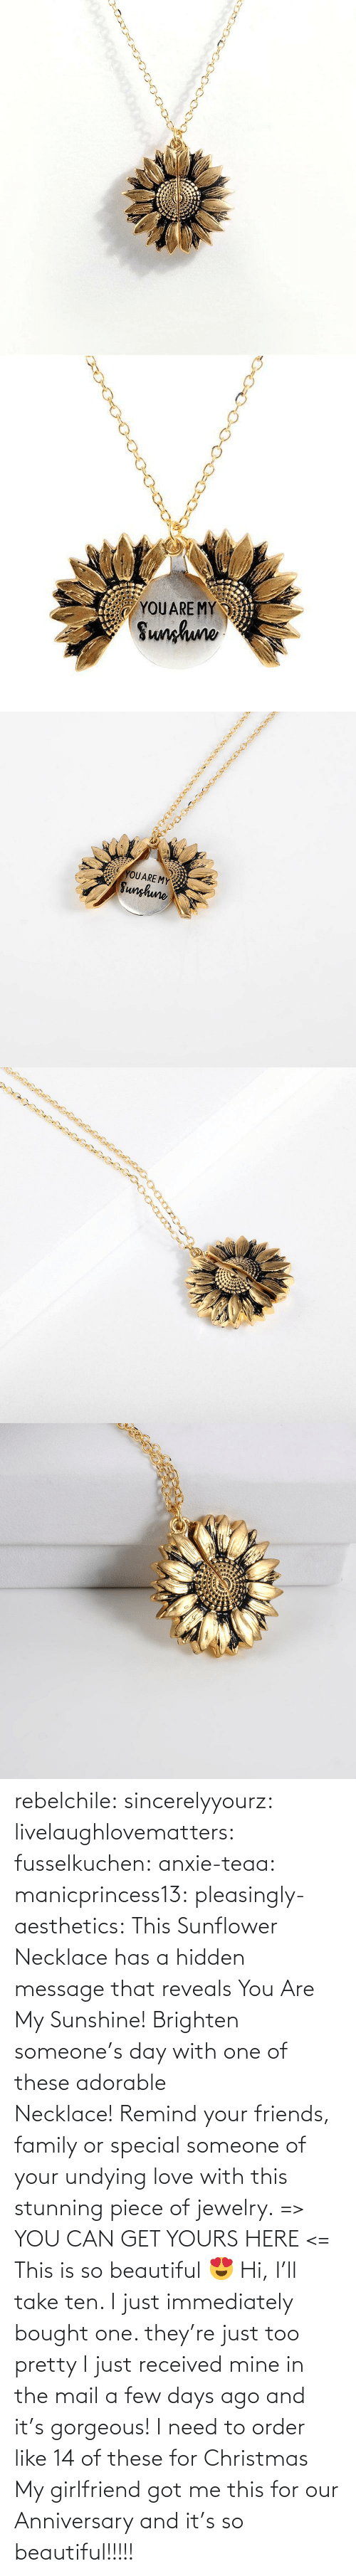 bought: rebelchile:  sincerelyyourz:  livelaughlovematters:  fusselkuchen:  anxie-teaa:   manicprincess13:   pleasingly-aesthetics:  This Sunflower Necklace has a hidden message that reveals You Are My Sunshine! Brighten someone's day with one of these adorable Necklace! Remind your friends, family or special someone of your undying love with this stunning piece of jewelry. => YOU CAN GET YOURS HERE <=   This is so beautiful 😍    Hi, I'll take ten.    I just immediately bought one. they're just too pretty   I just received mine in the mail a few days ago and it's gorgeous!   I need to order like 14 of these for Christmas    My girlfriend got me this for our Anniversary and it's so beautiful!!!!!